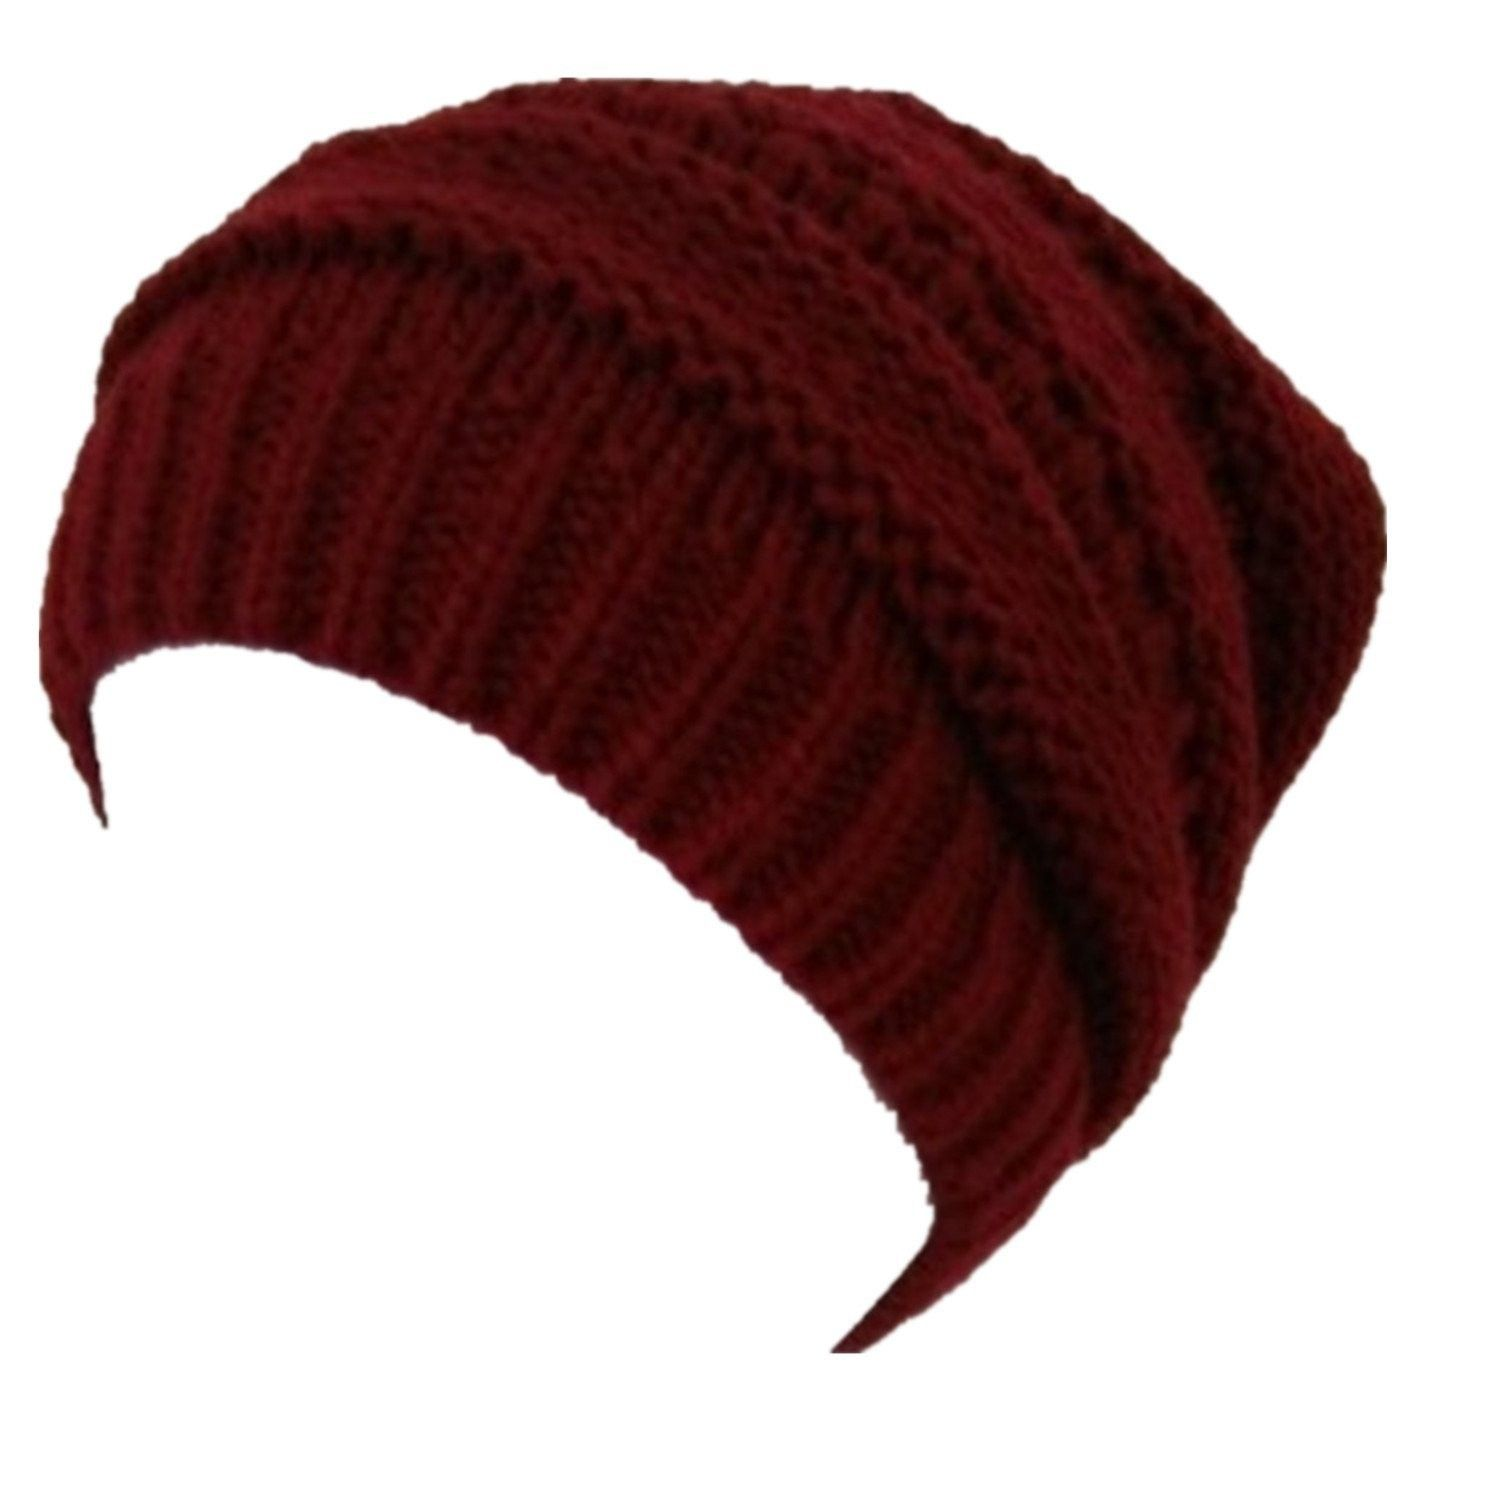 88c08ffd687 2 Pack-Winter Womens Mens Slouchy Soft Stretch Cable Knitted Slouchy Beanie  Caps Skully Hat